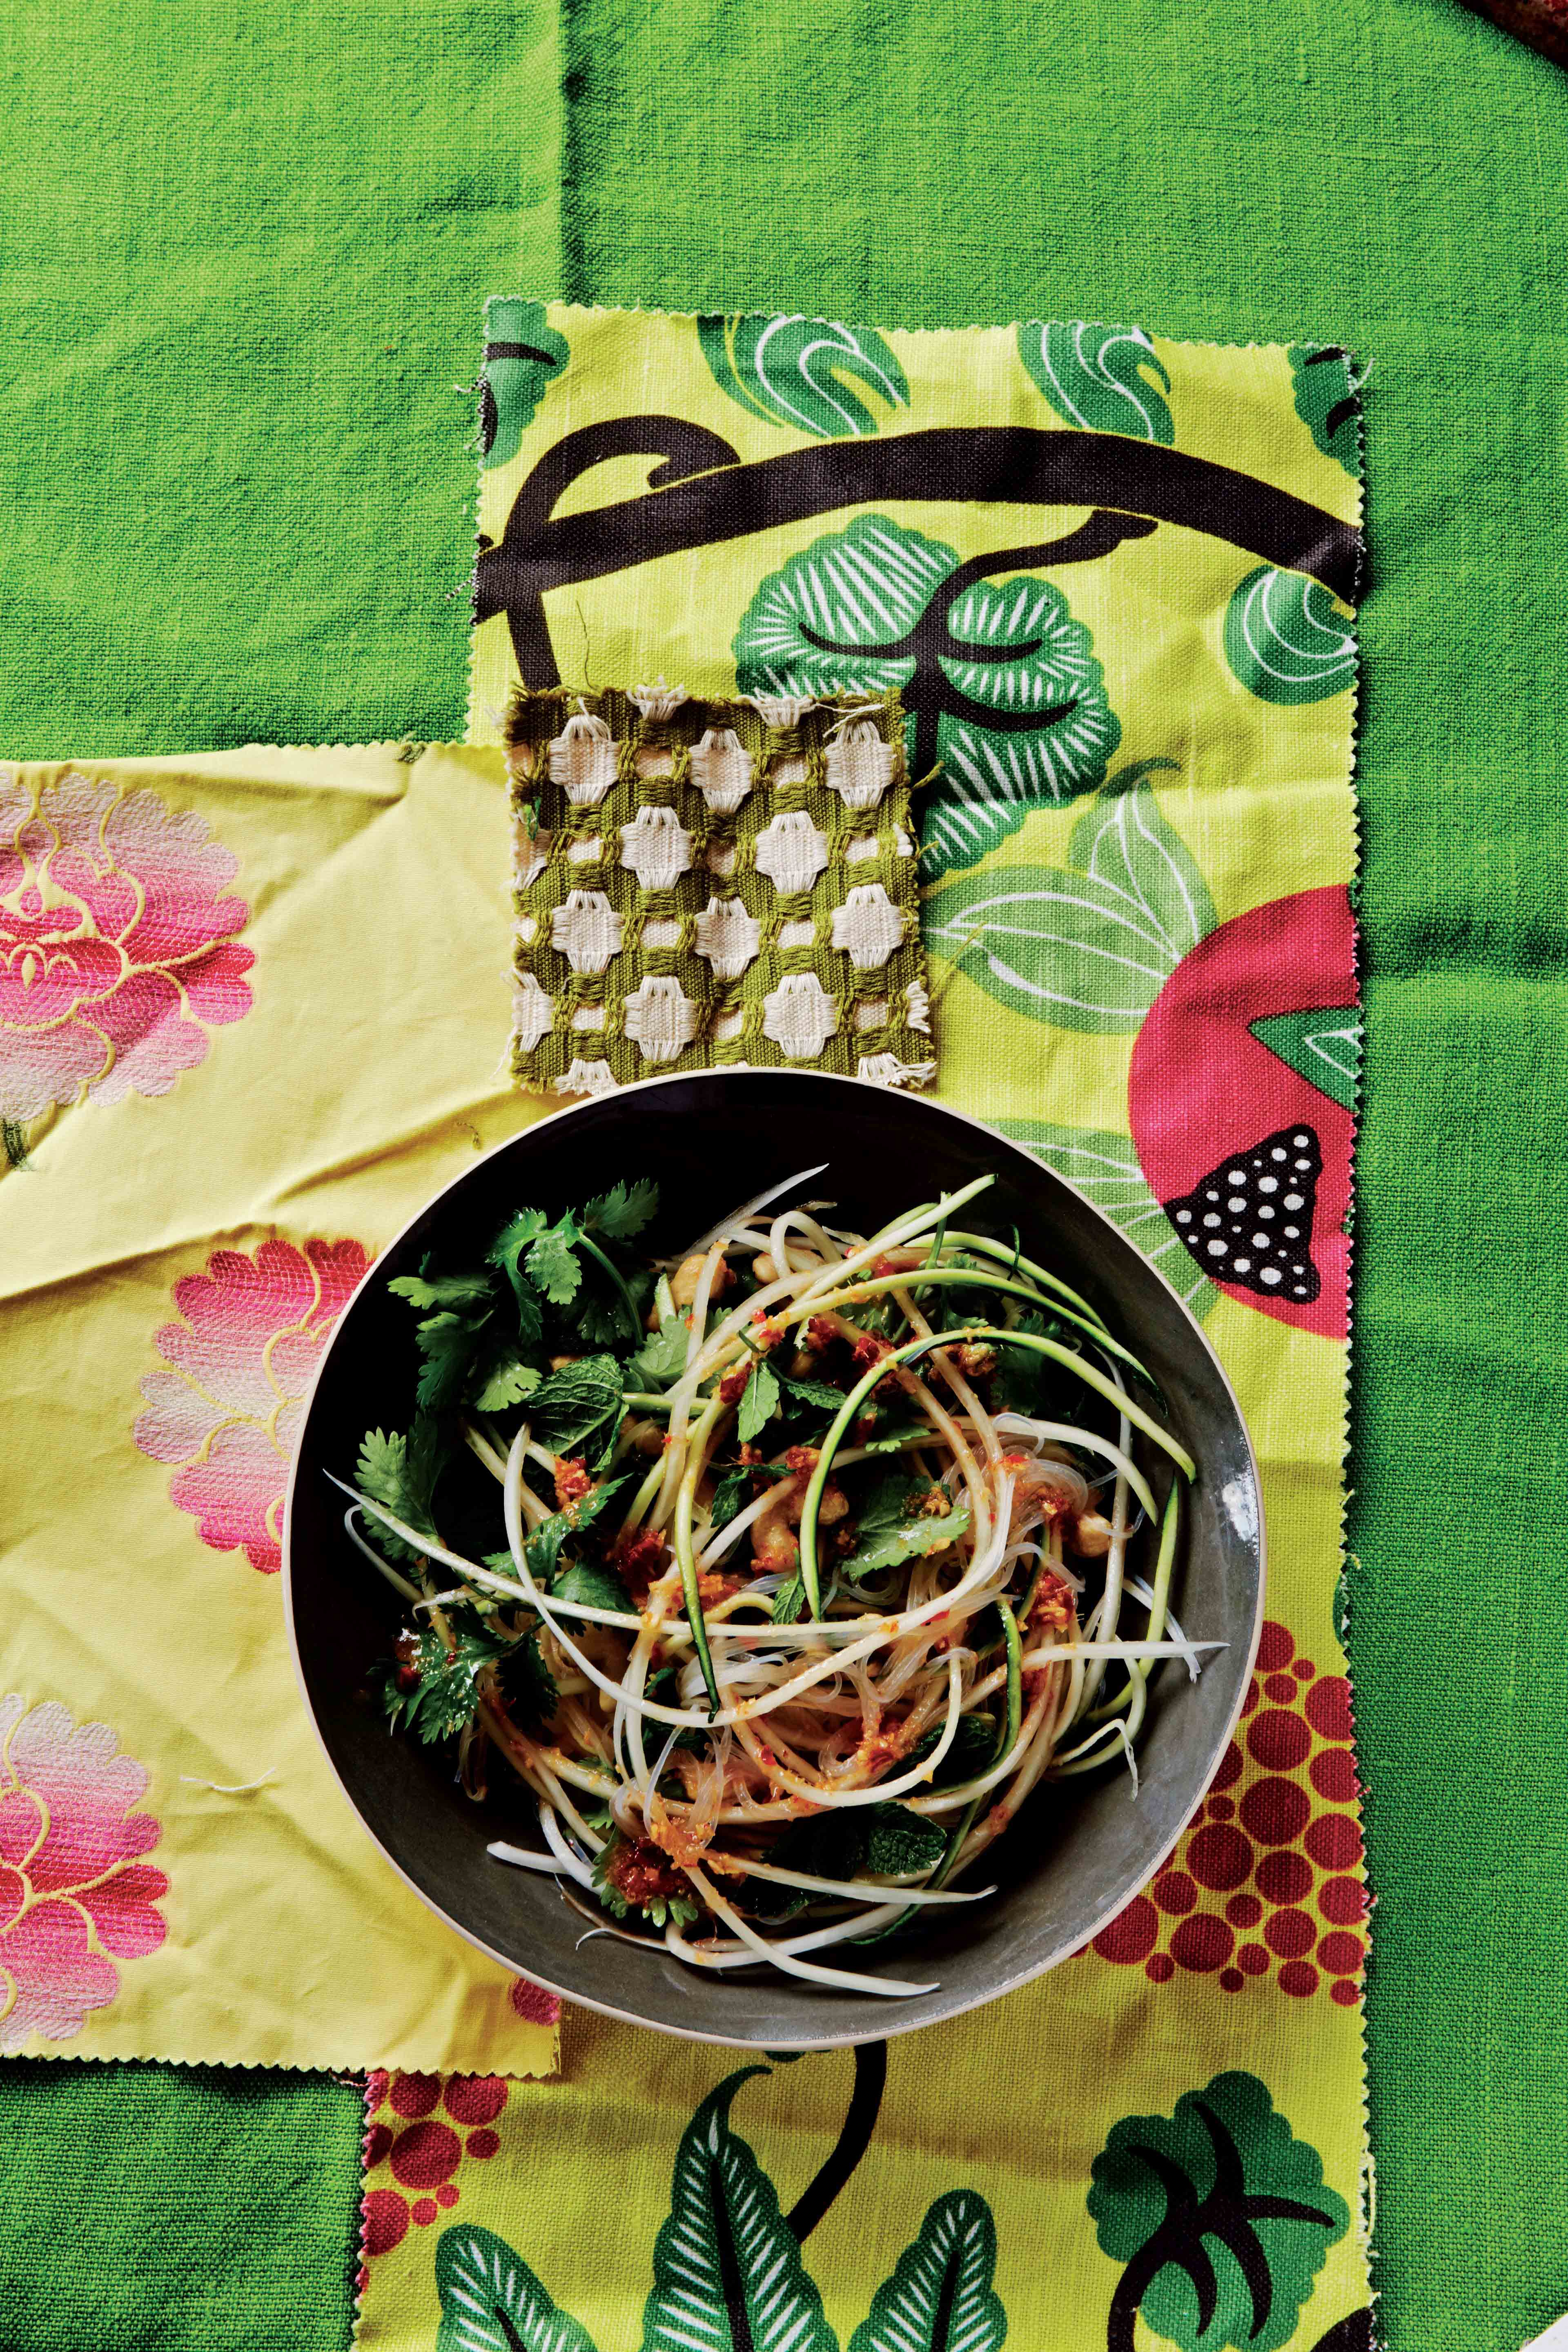 Green papaya & courgette fettuccine with thread noodles & cashews